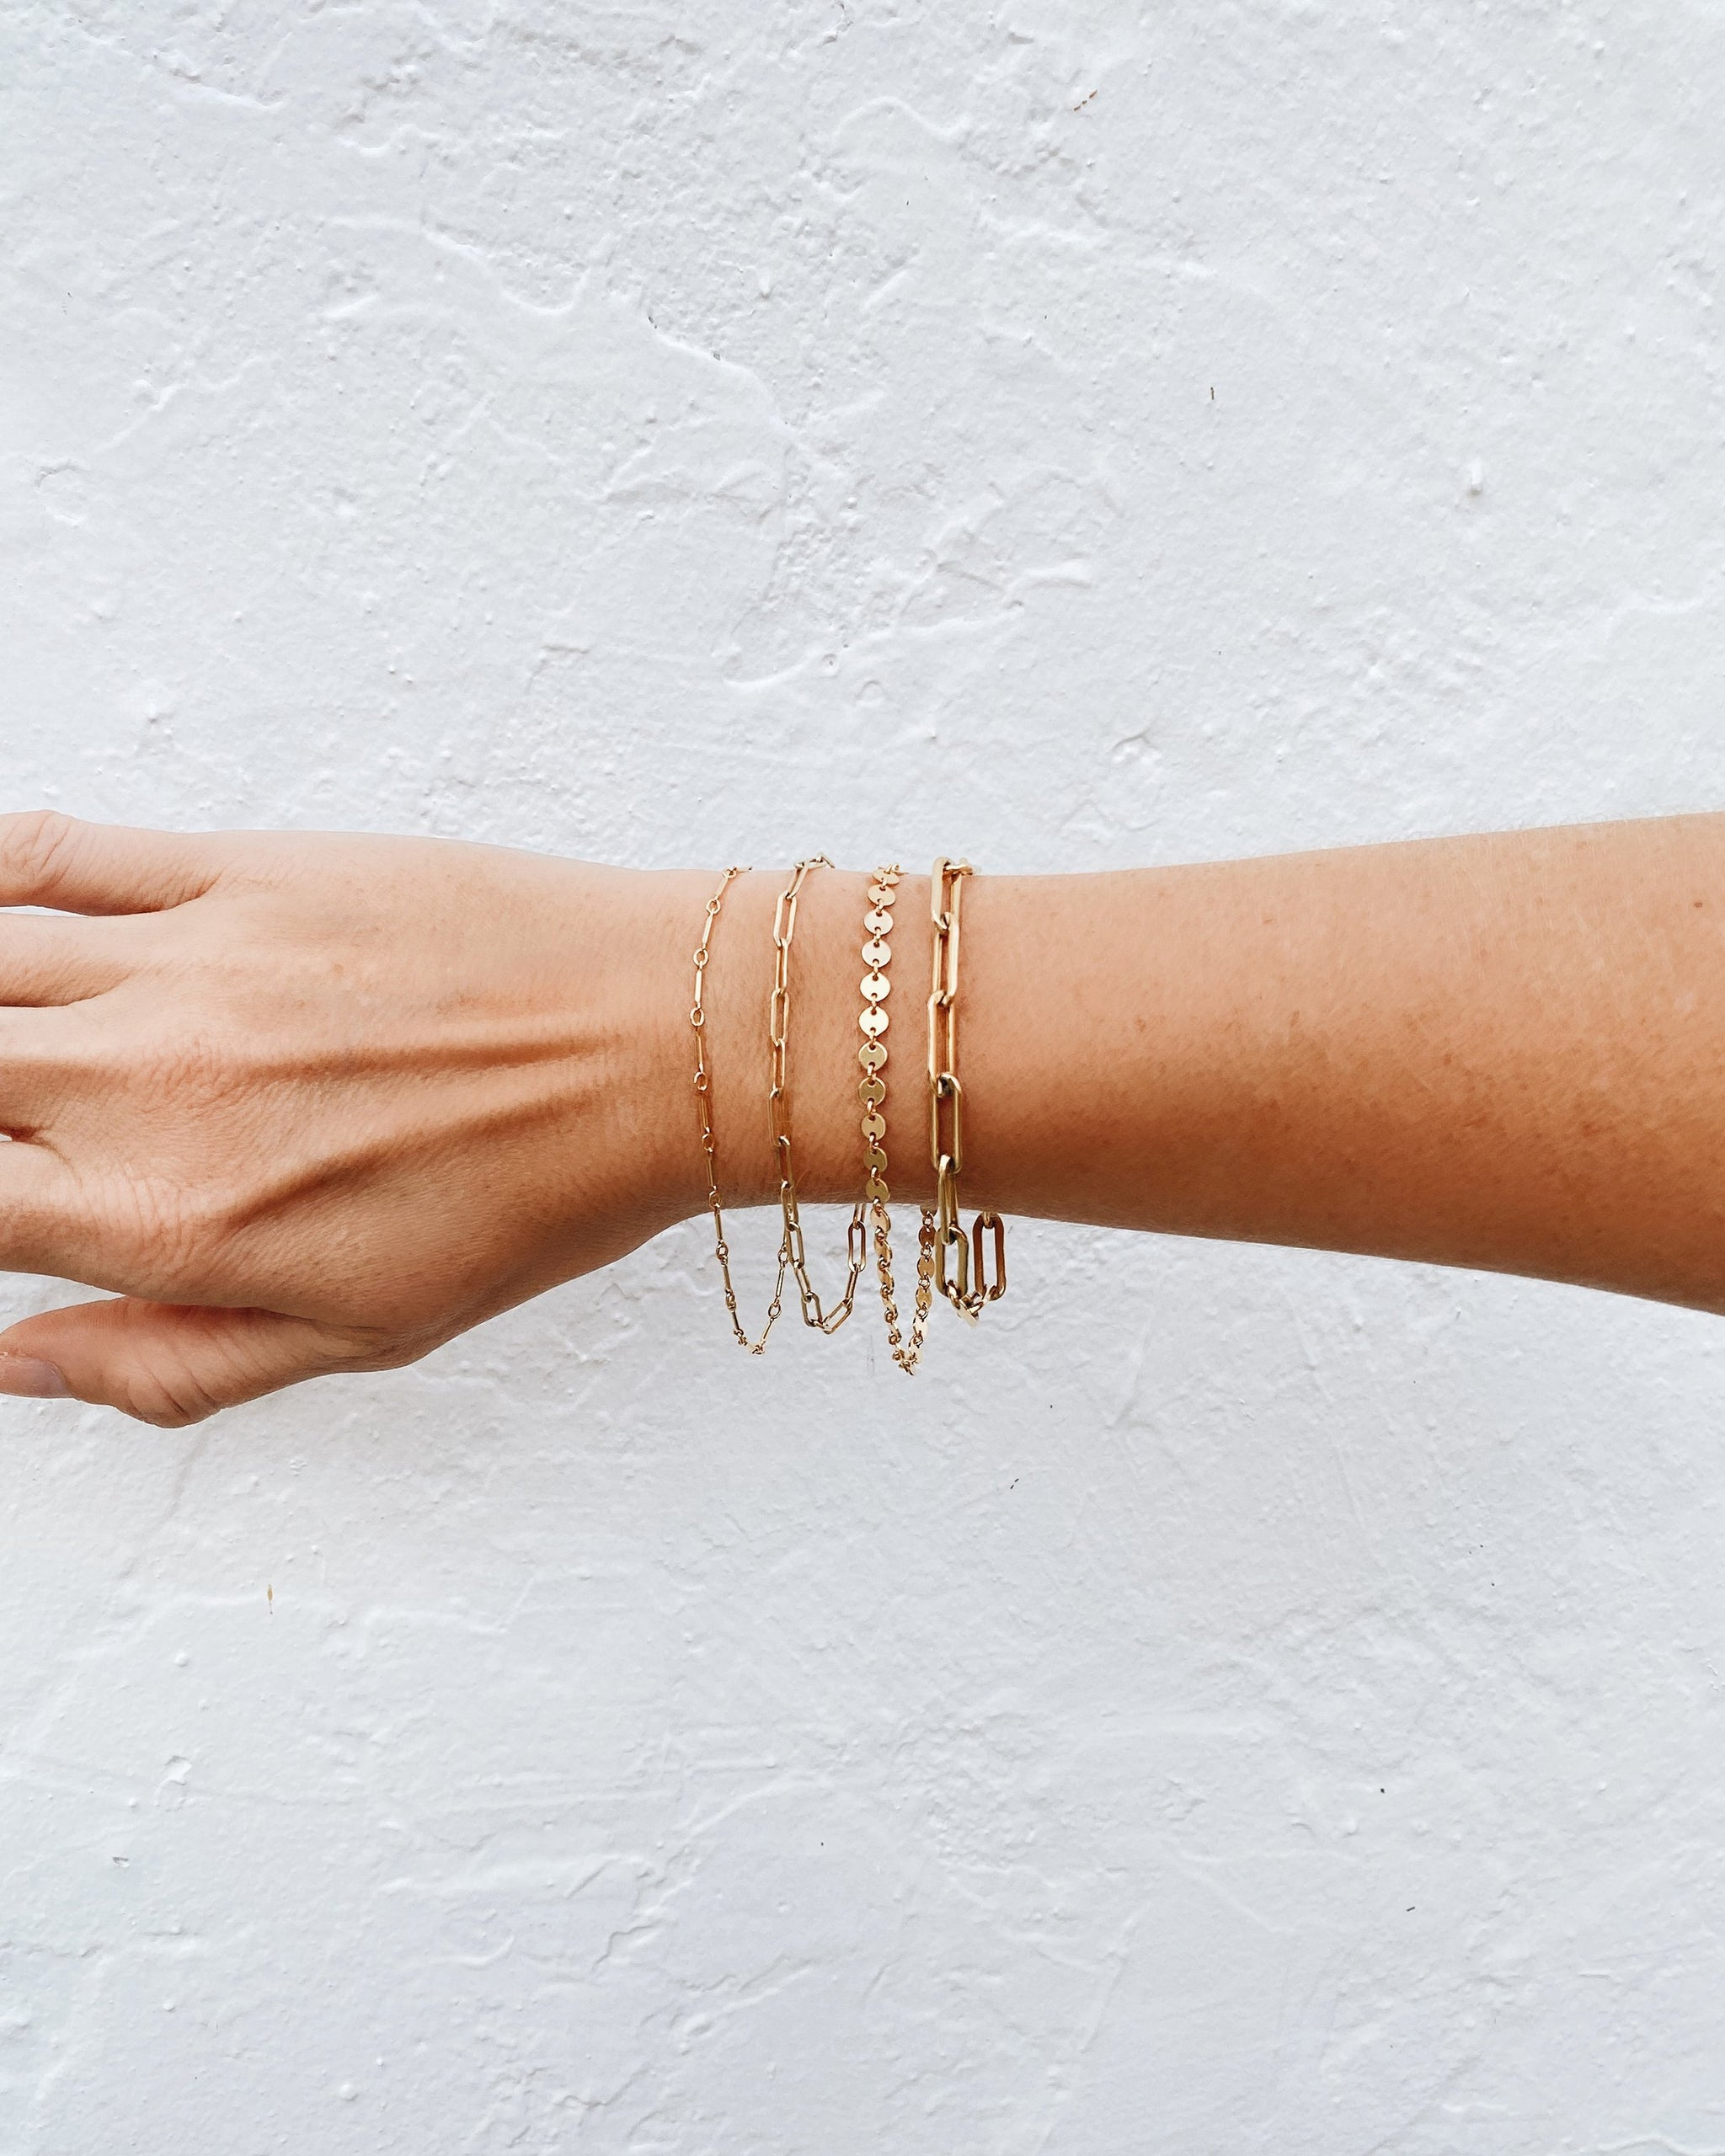 Heavyweight Paperclip Chain Bracelet, 14k Gold Filled, Made by Turquoise + Tobacco